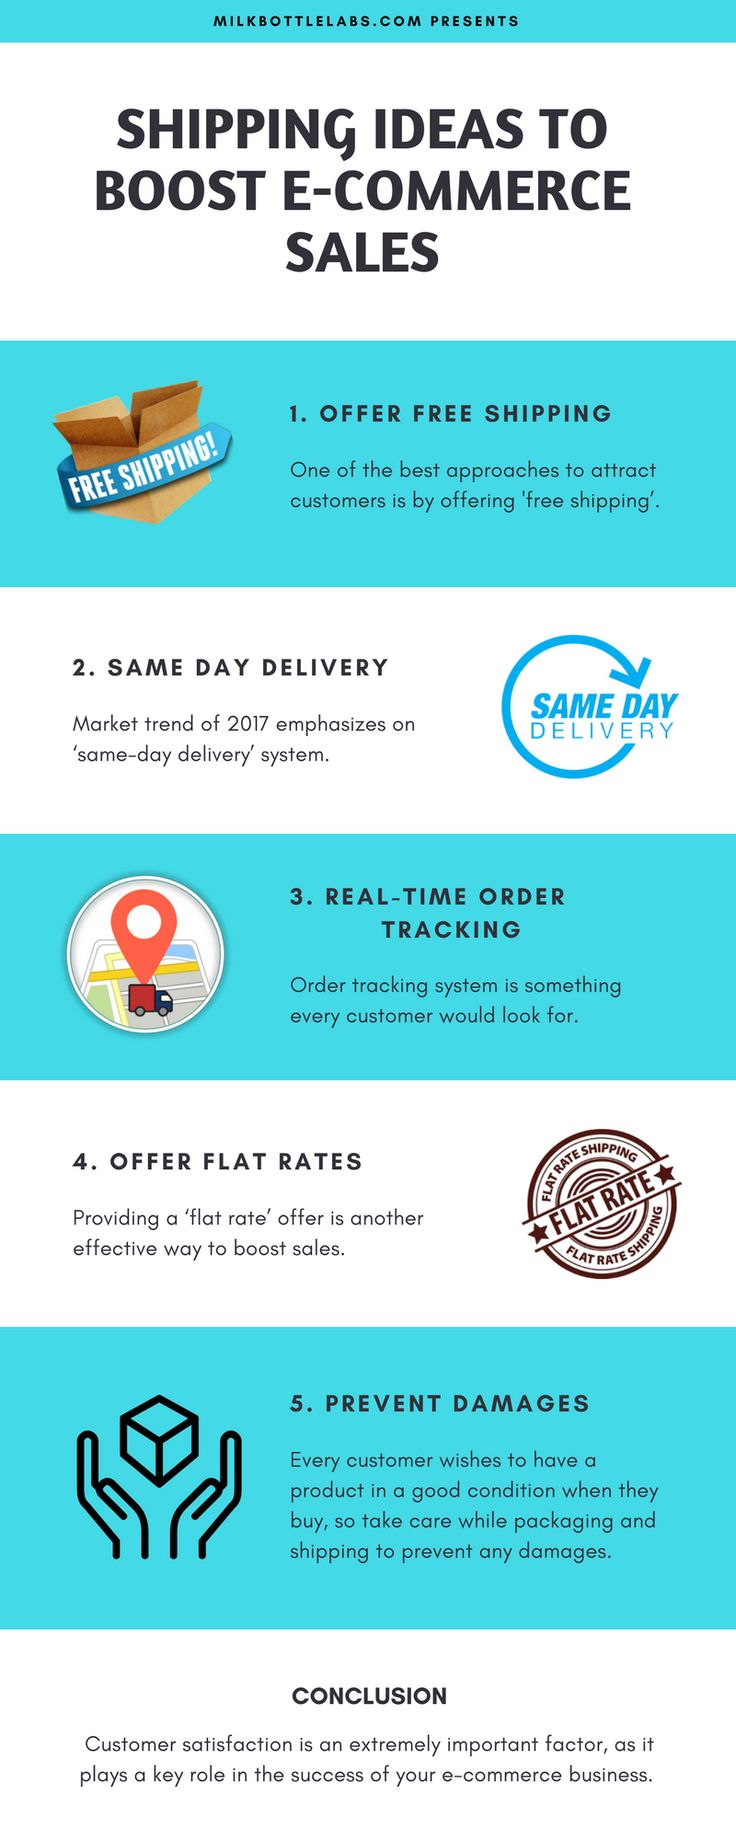 Here are some practices that can help boost your e-commerce sales.